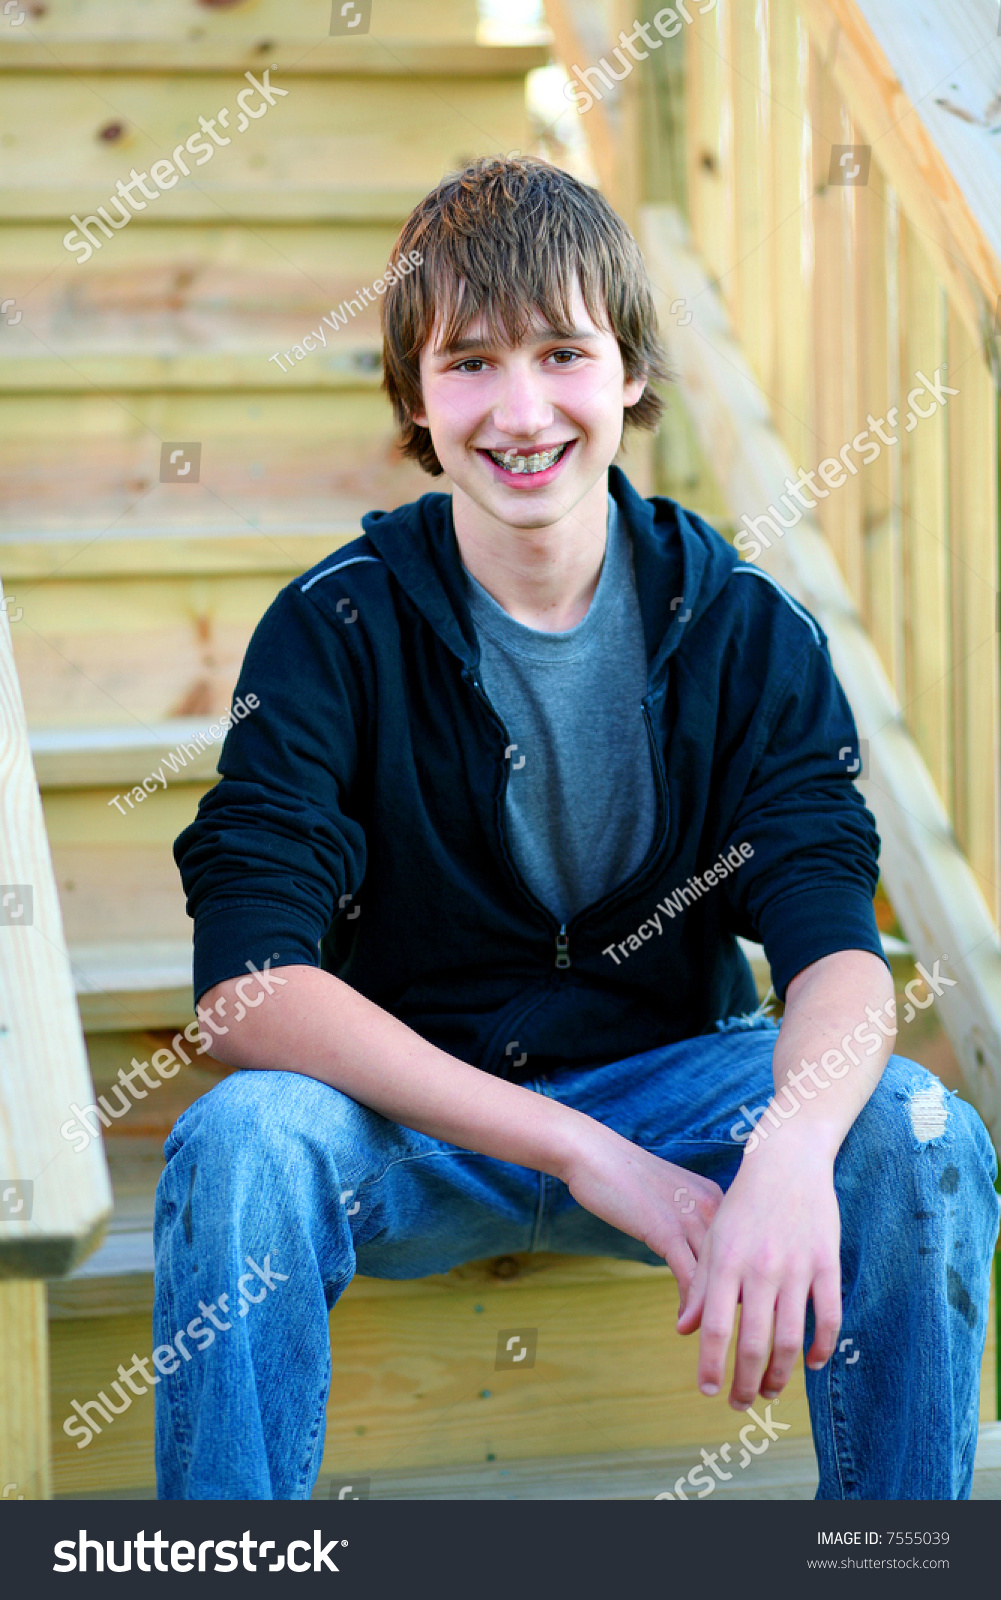 Handsome Teen Guy Model Seated On Stock Photo 7555039 - Shutterstock